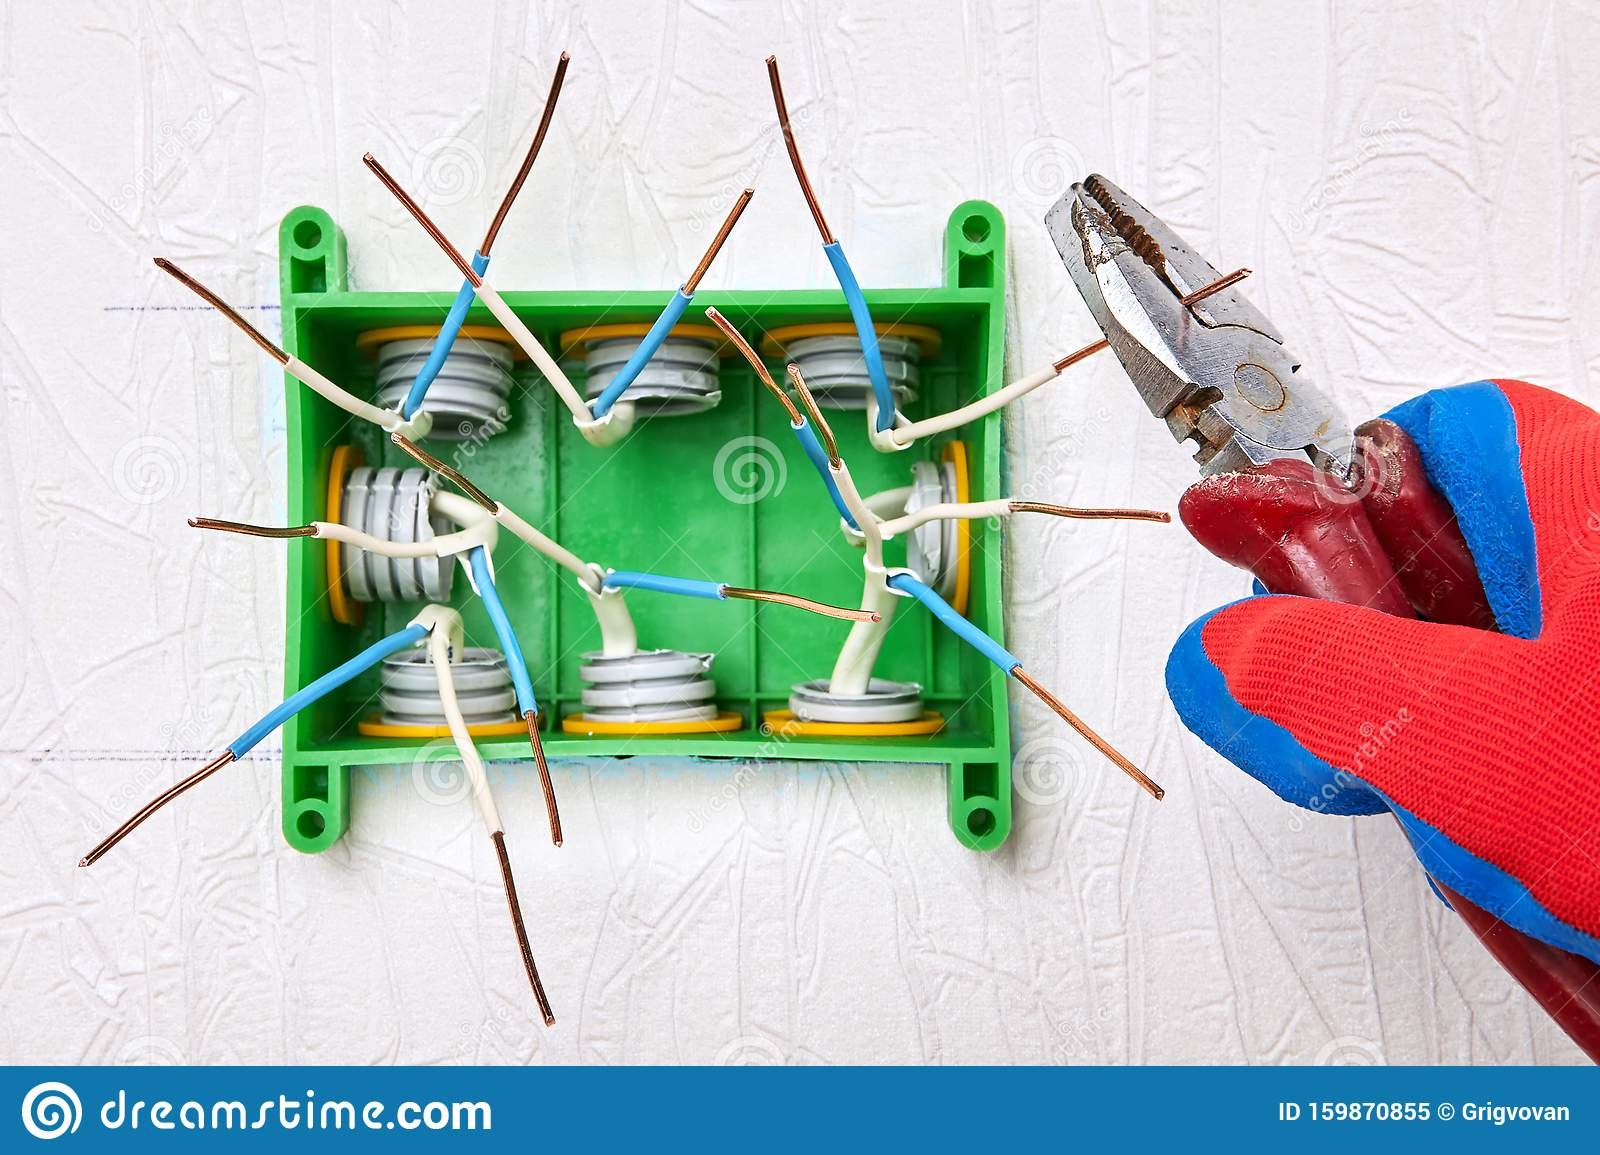 Electrical Work Installation Of Household Wiring Stock Image Image Of Home Green 159870855